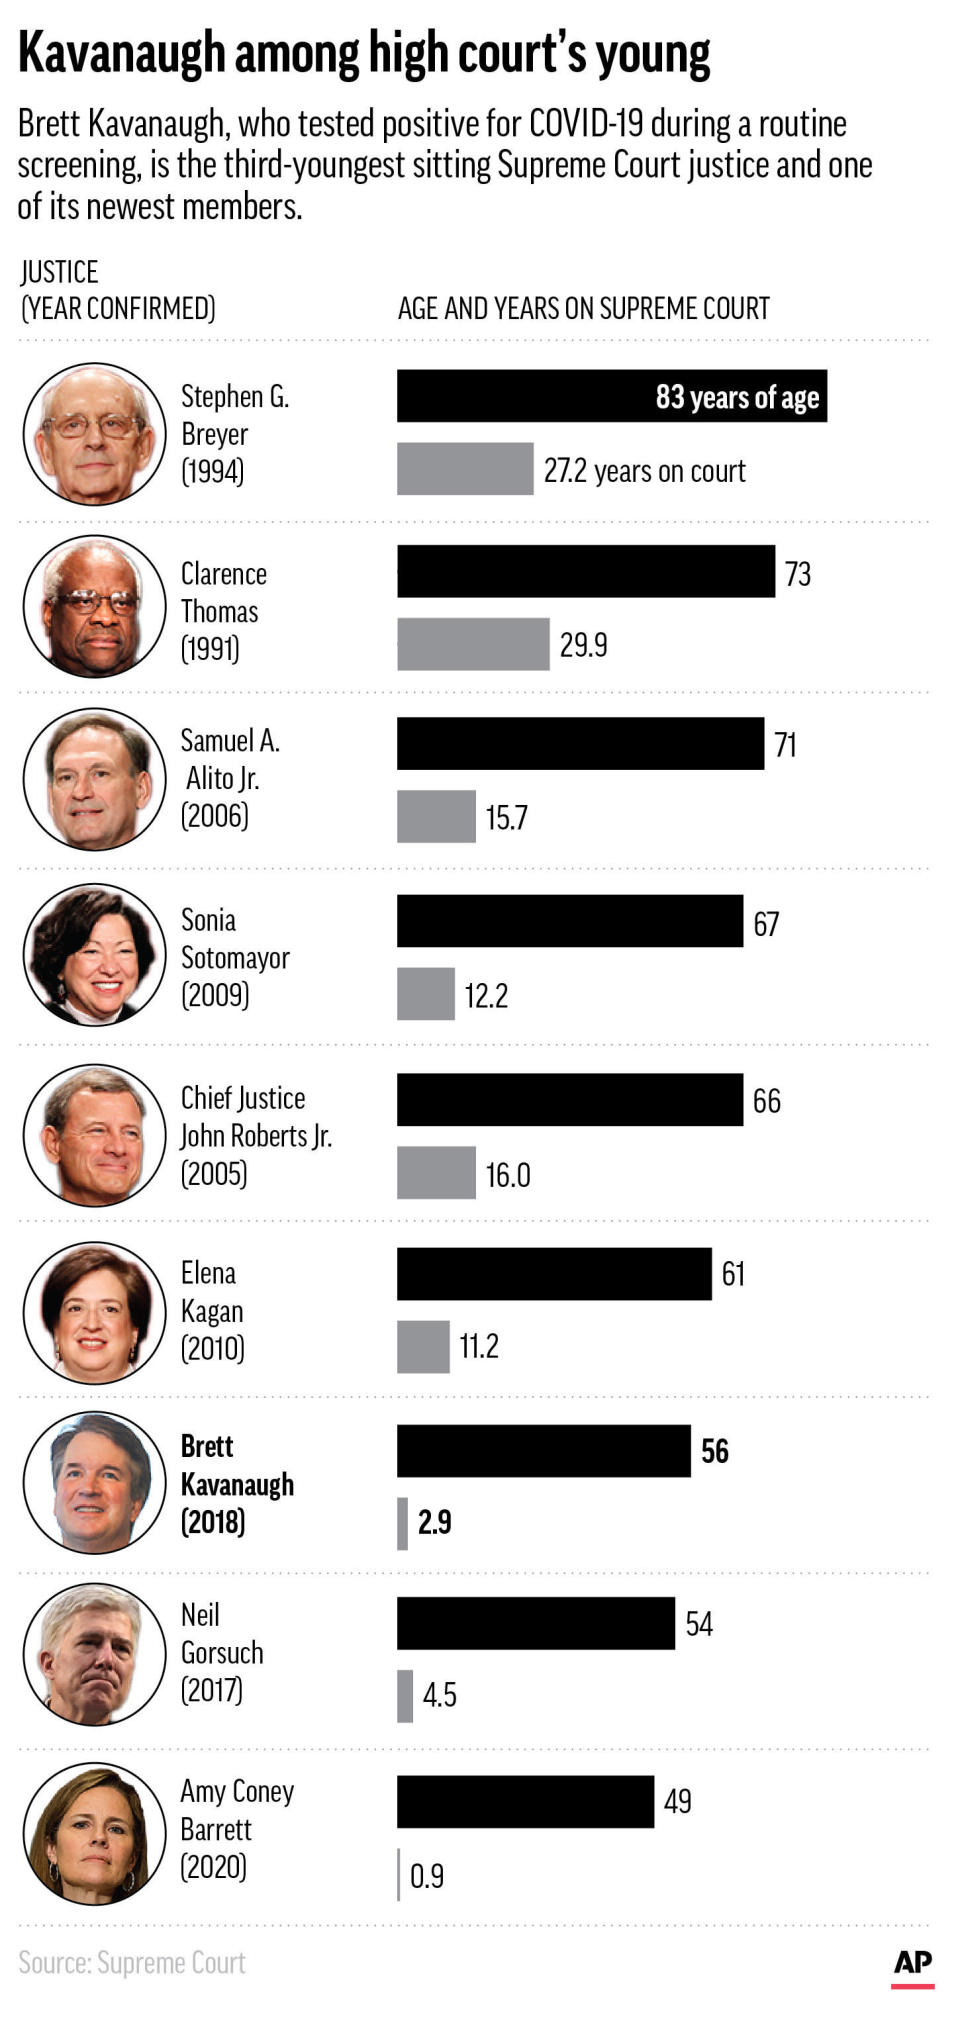 Supreme Court Justice Brett Kavanaugh is among the youngest and newest of the sitting justices. (AP Graphic)